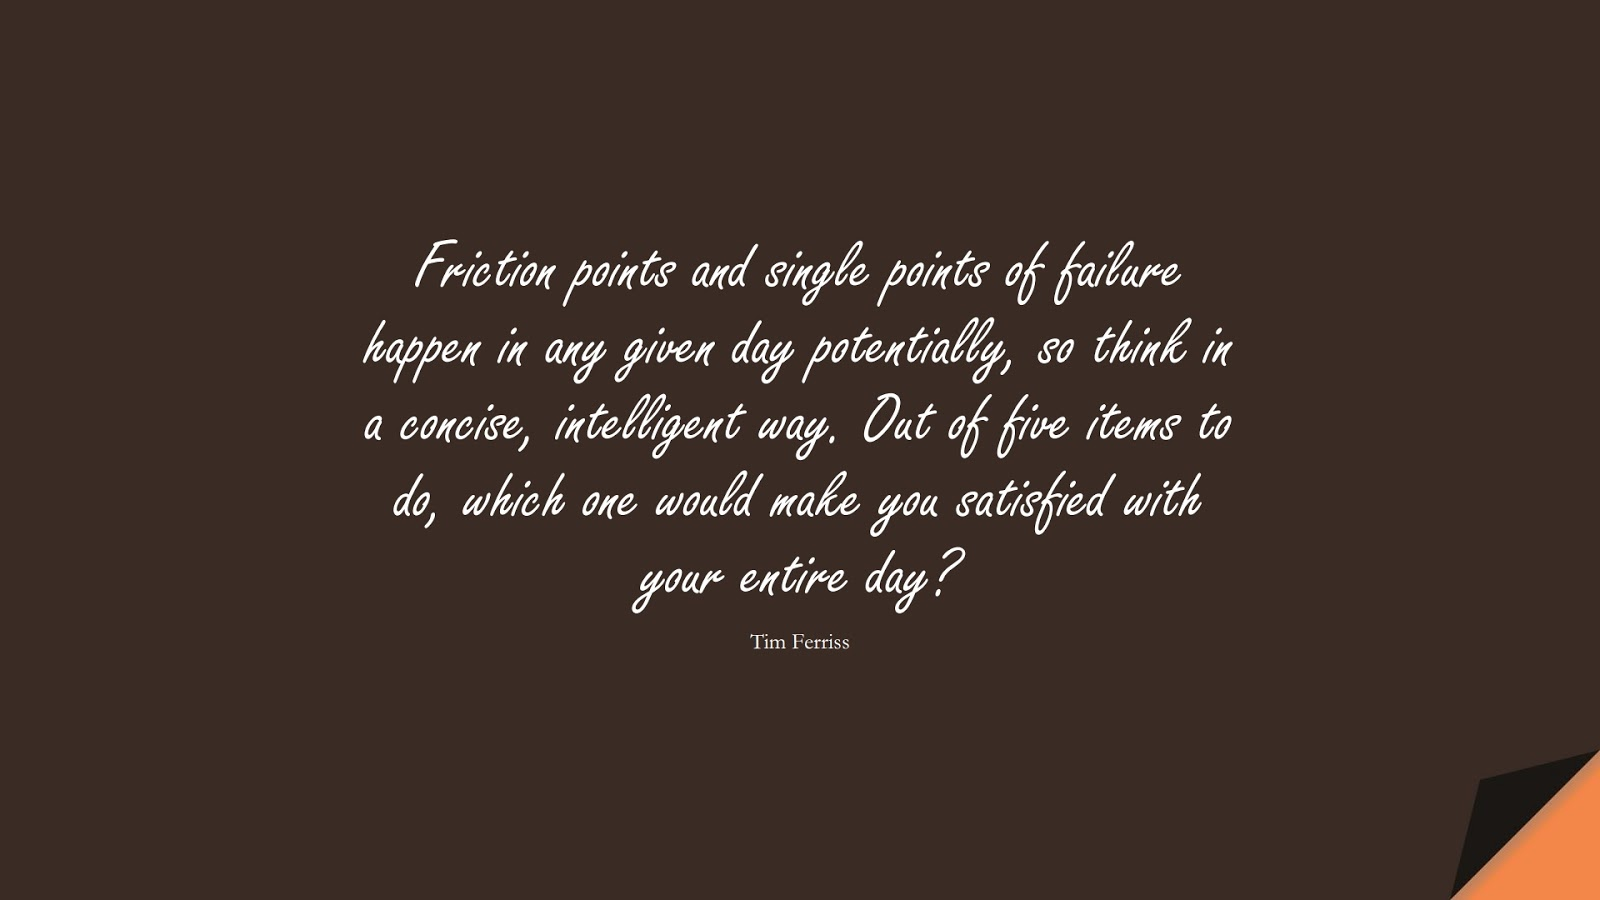 Friction points and single points of failure happen in any given day potentially, so think in a concise, intelligent way. Out of five items to do, which one would make you satisfied with your entire day? (Tim Ferriss);  #TimFerrissQuotes